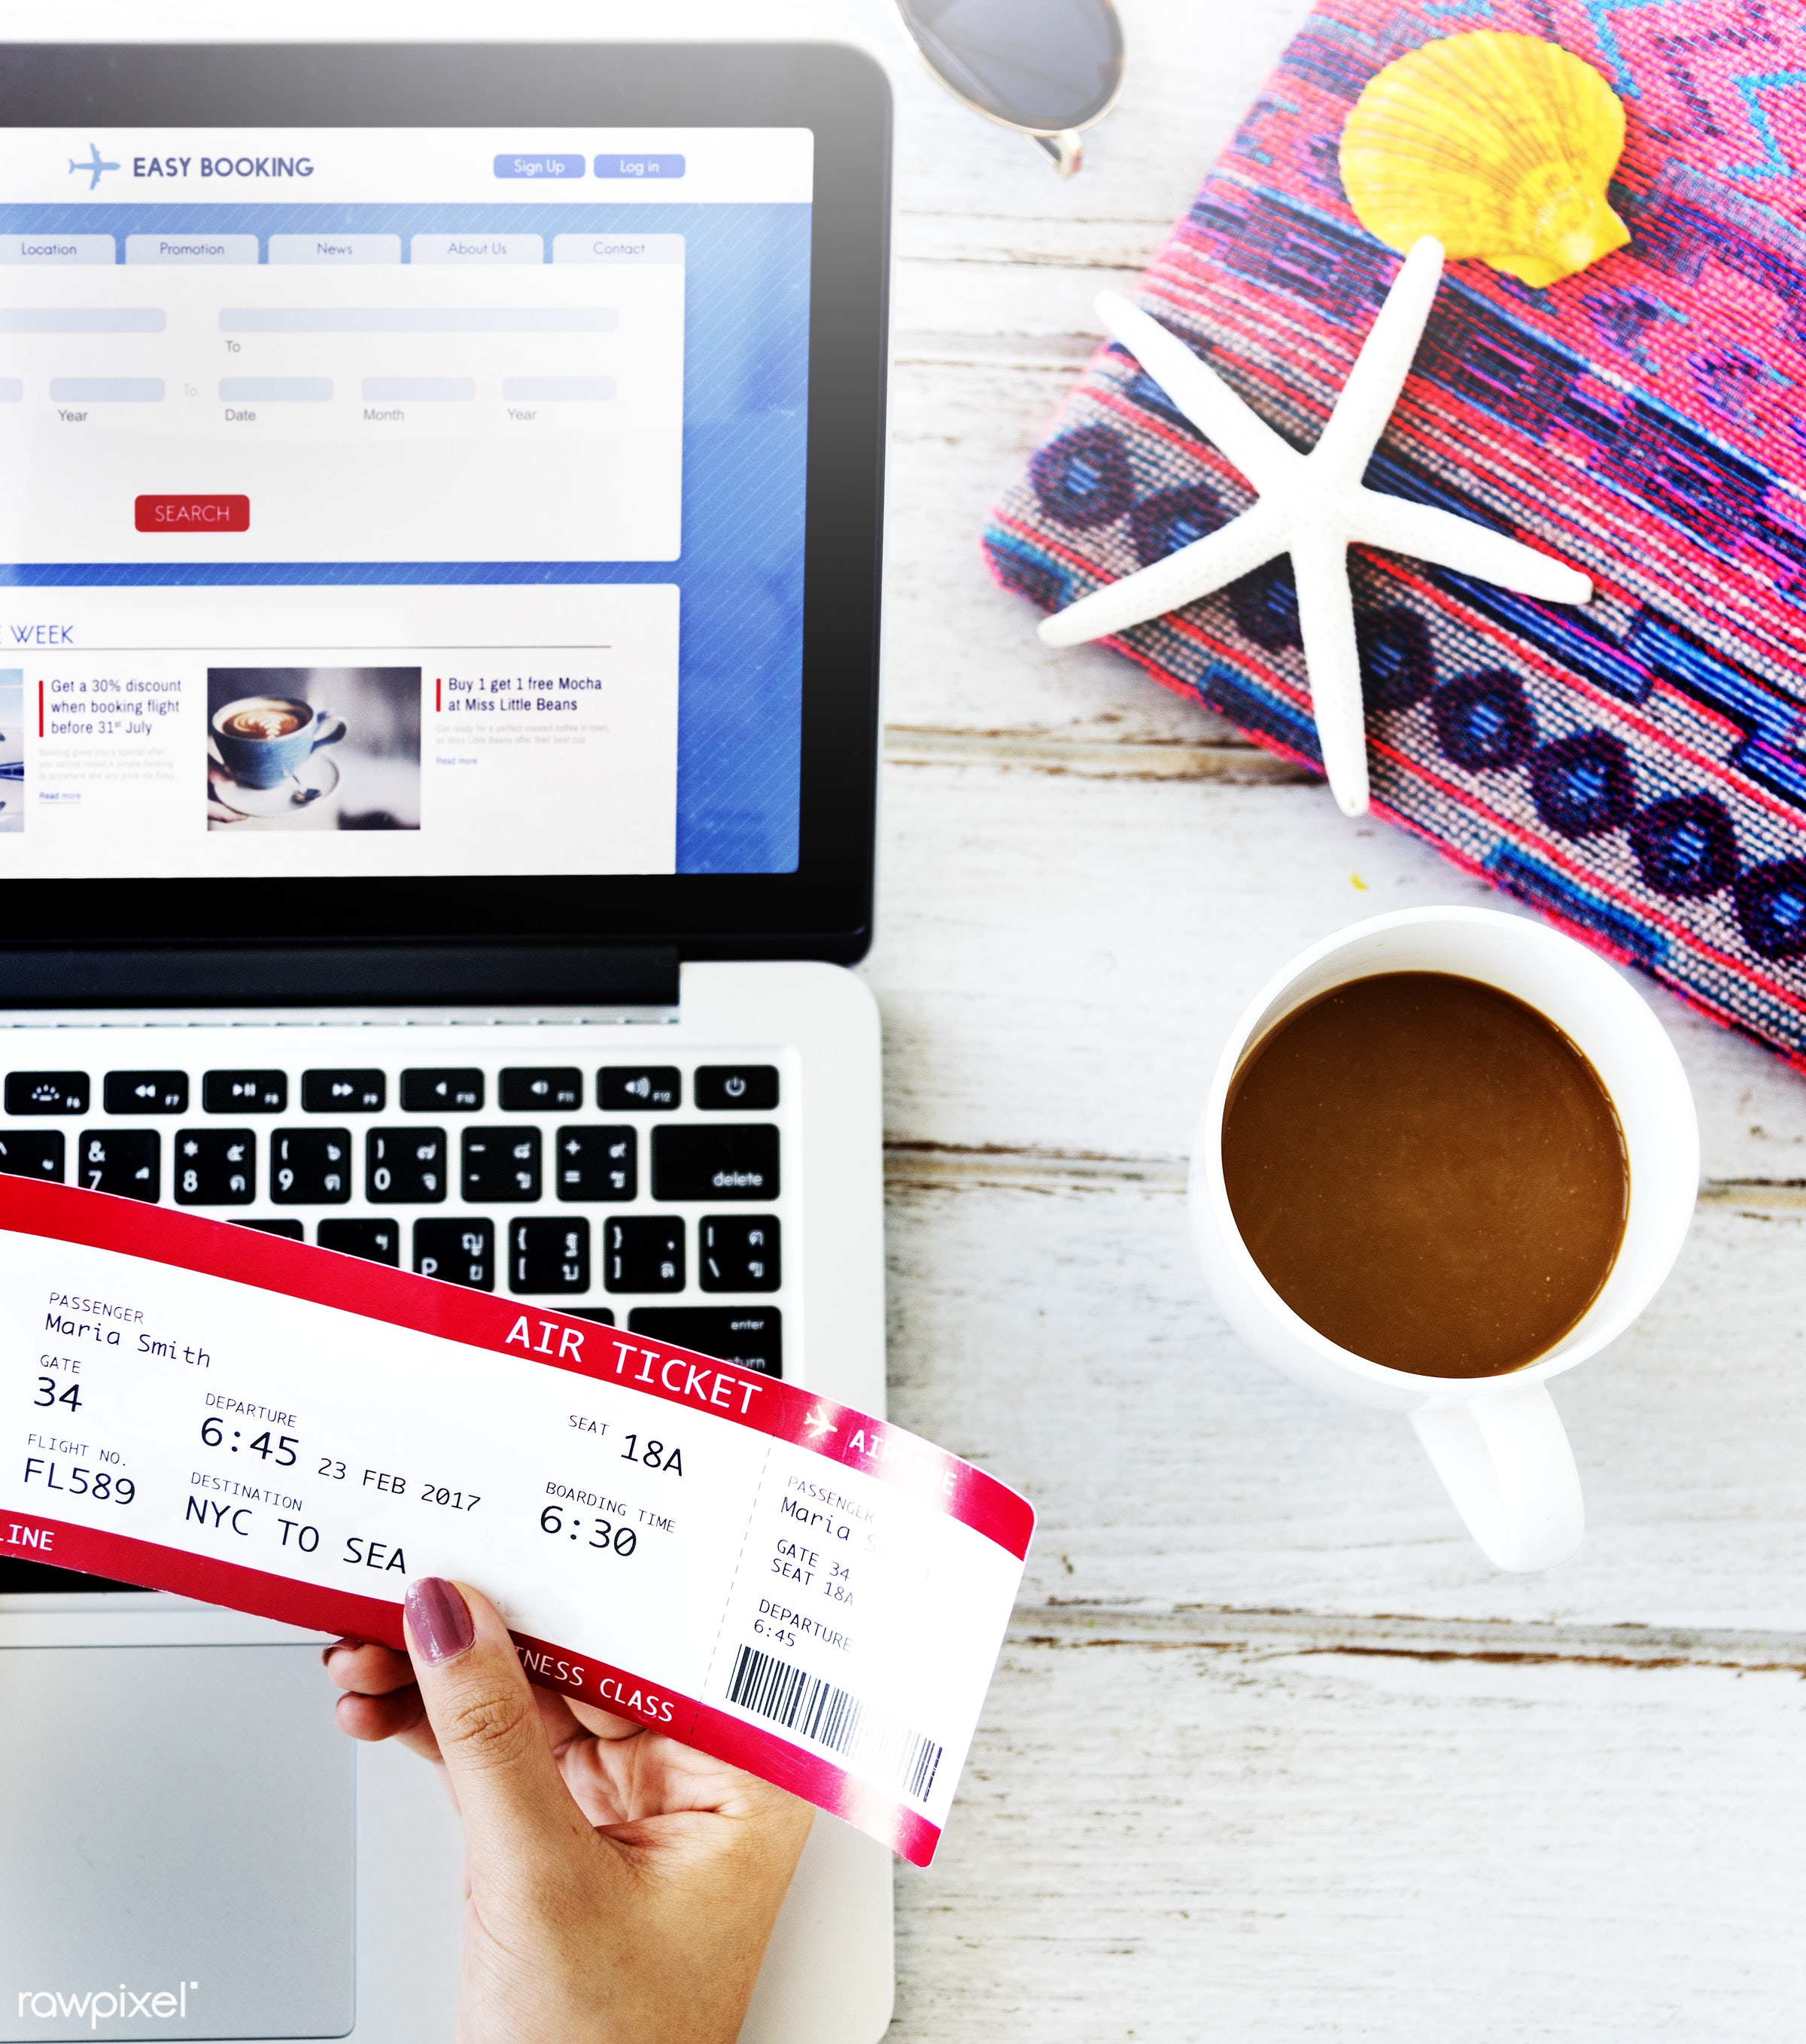 air ticket, booking, check, communication, computer, connection, design, detail, device, digital, internet, leisure, media,...